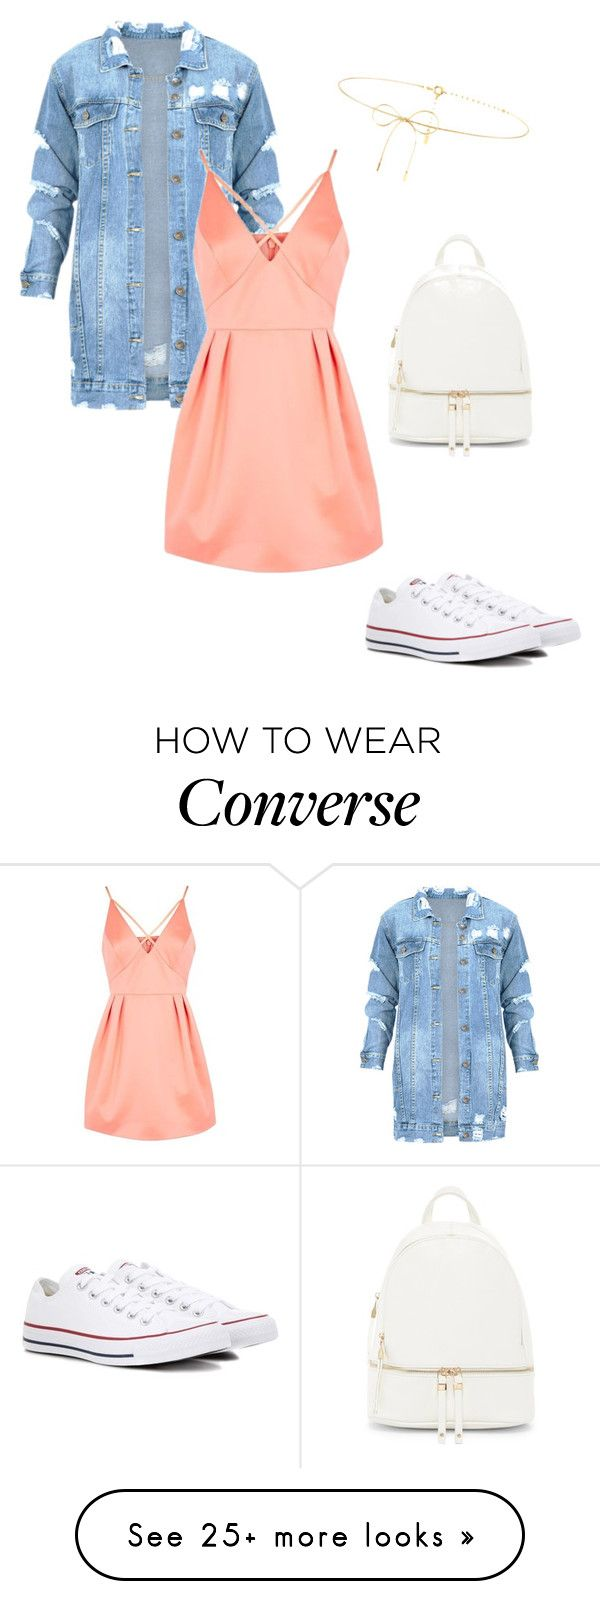 """Untitled #1"" by caterack on Polyvore featuring Converse, Topshop, Lilou and Urban Expressions"